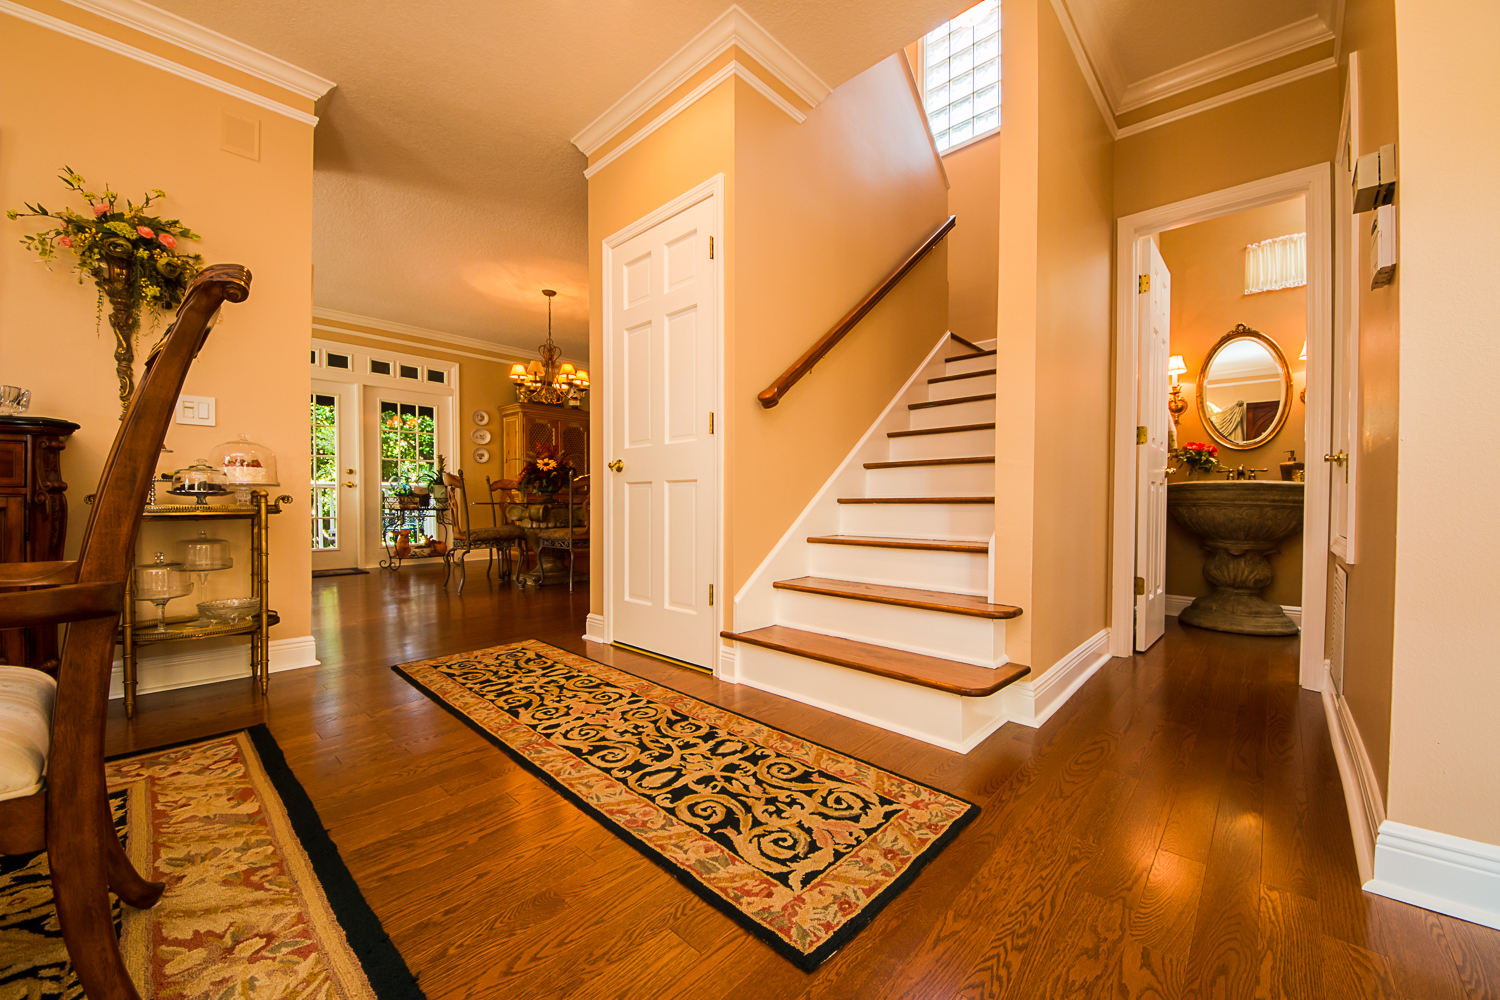 Mirage Sierra Oak Wood Flooring in Stairway with peach walls